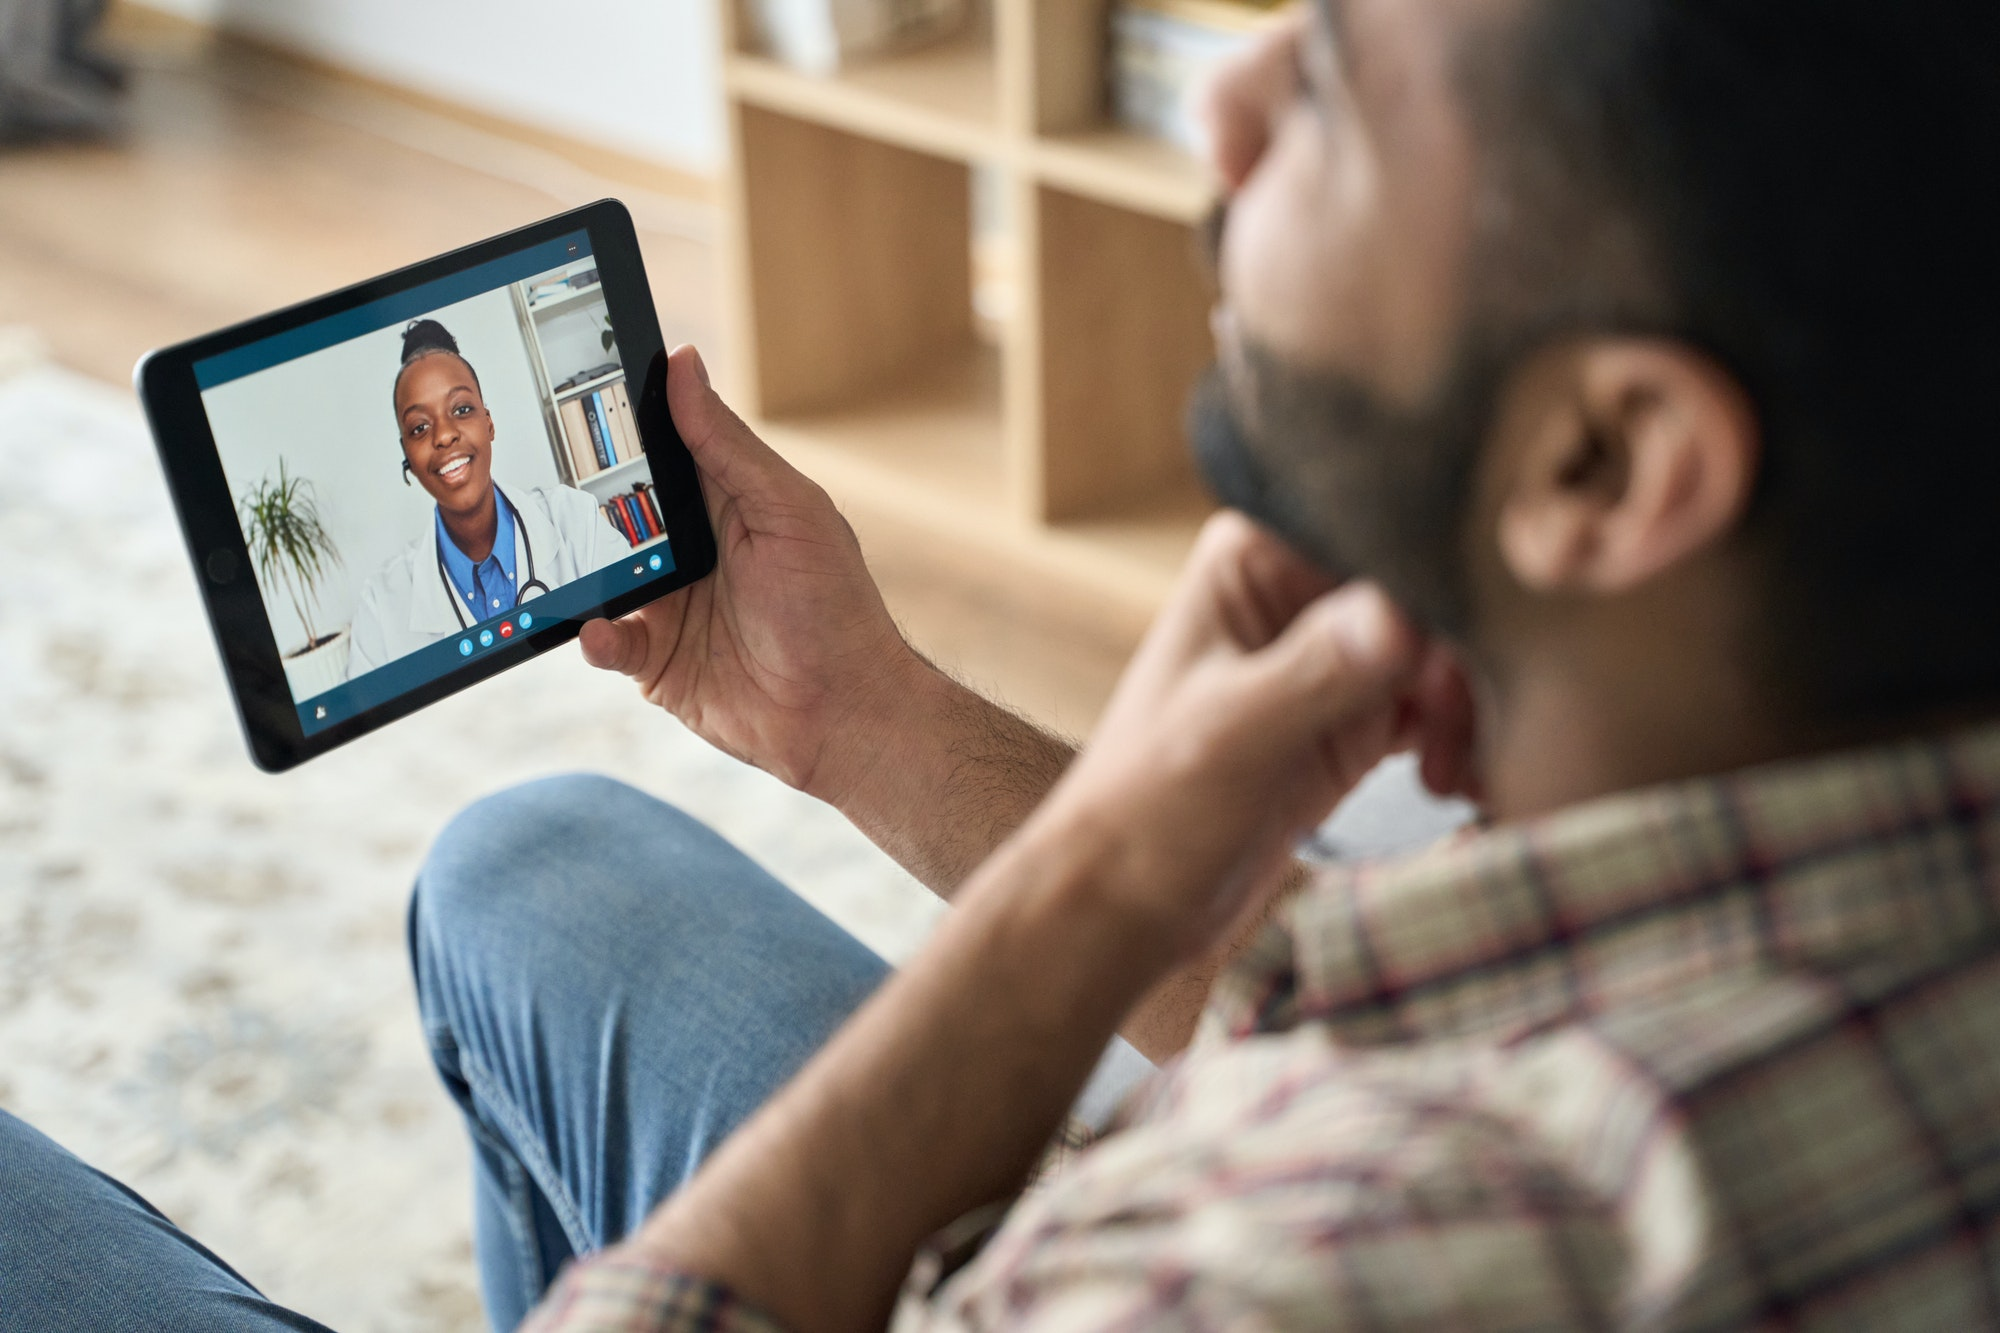 After-Hours Healthcare with Telehealth Platform